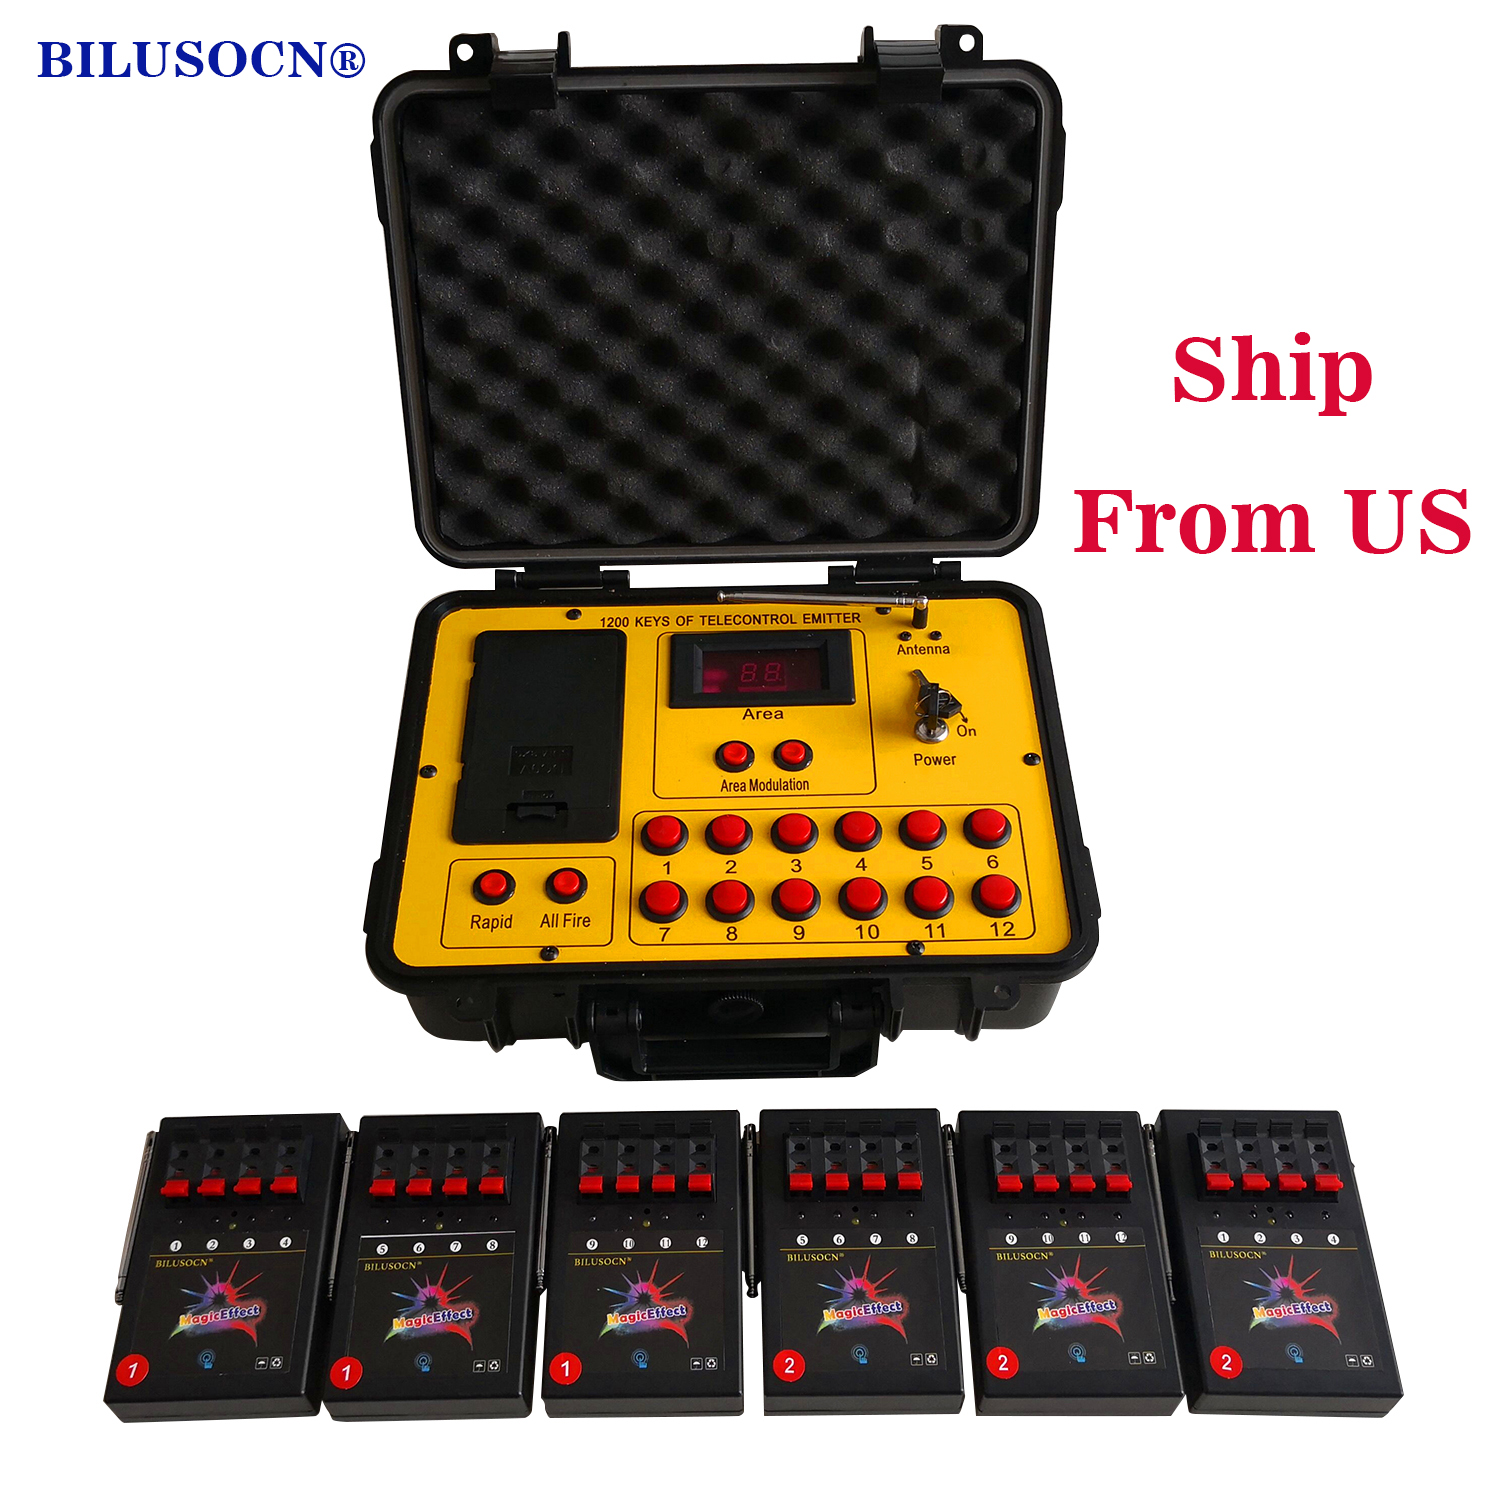 Shipping From USA Bilusocn 500M distance+24 Cues Fireworks Firing System ABS Waterproof Case remote Control Equipment